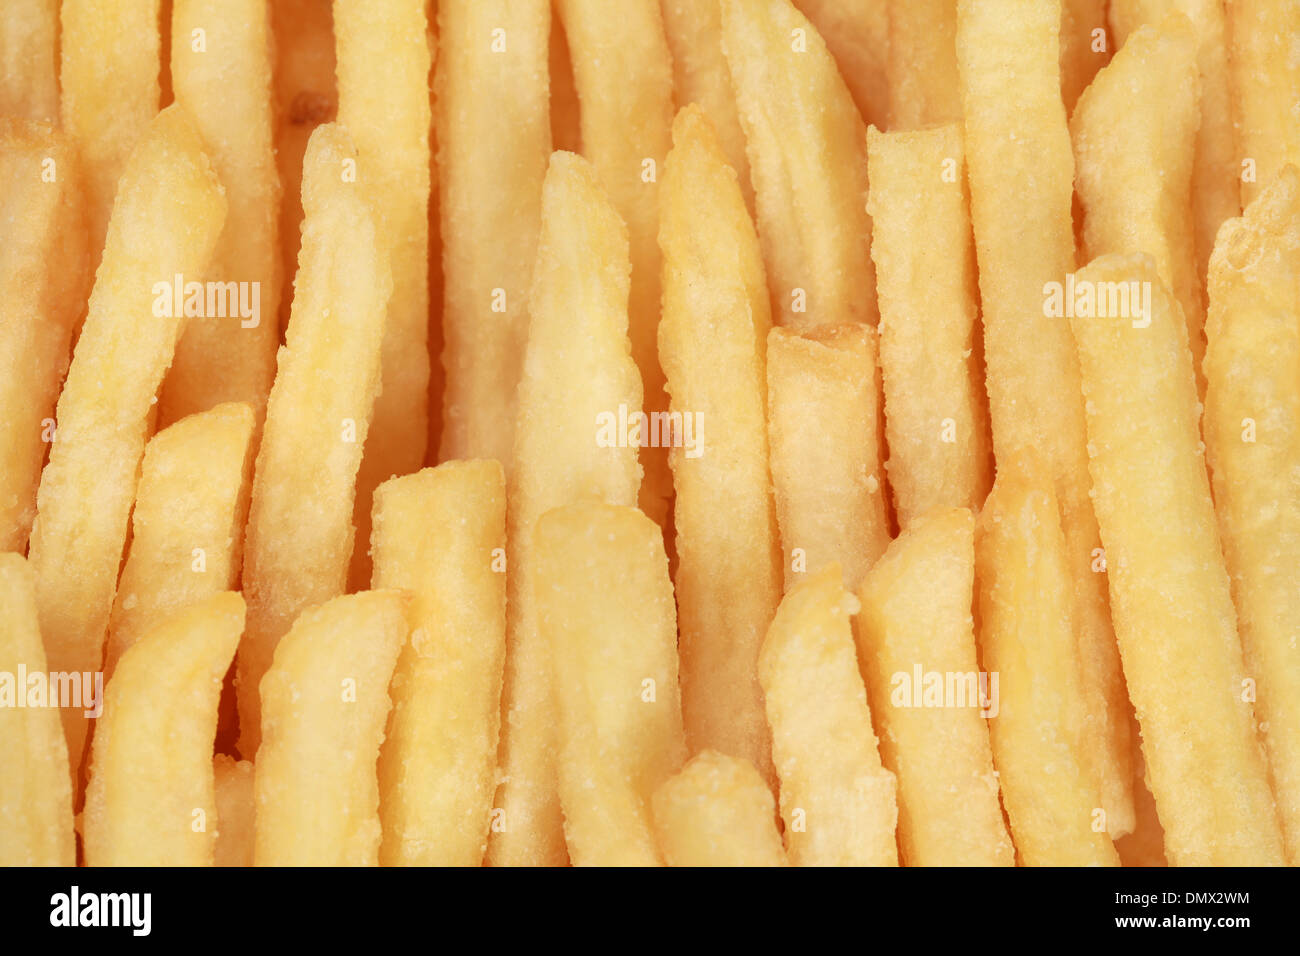 French fries forming a fast food background - Stock Image